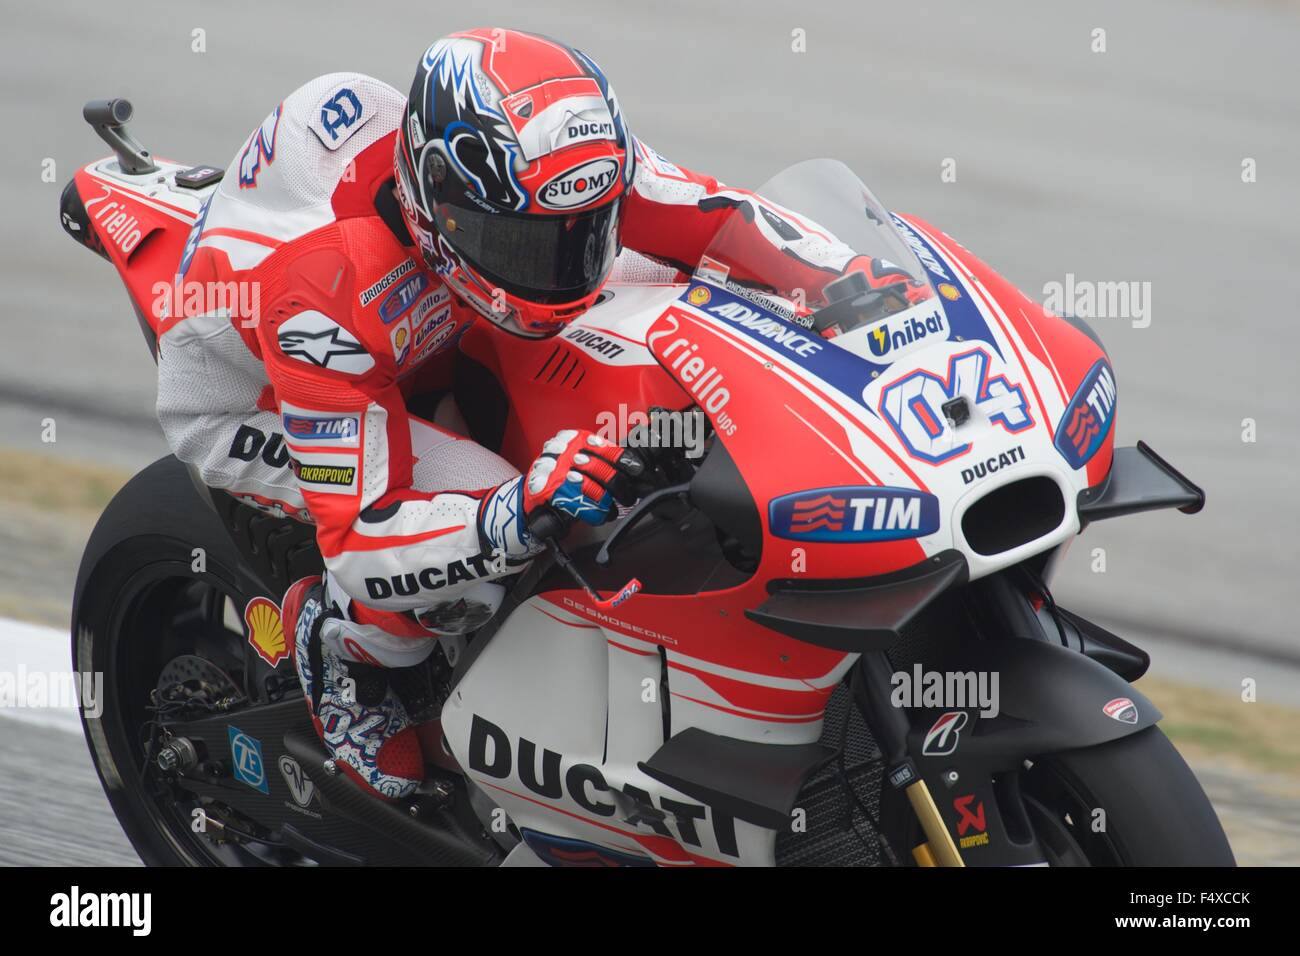 Sepang Circuit, Malaysia. 23rd Oct, 2015. Andrea Dovizioso and the front winglets of his Ducati during the Free - Stock Image